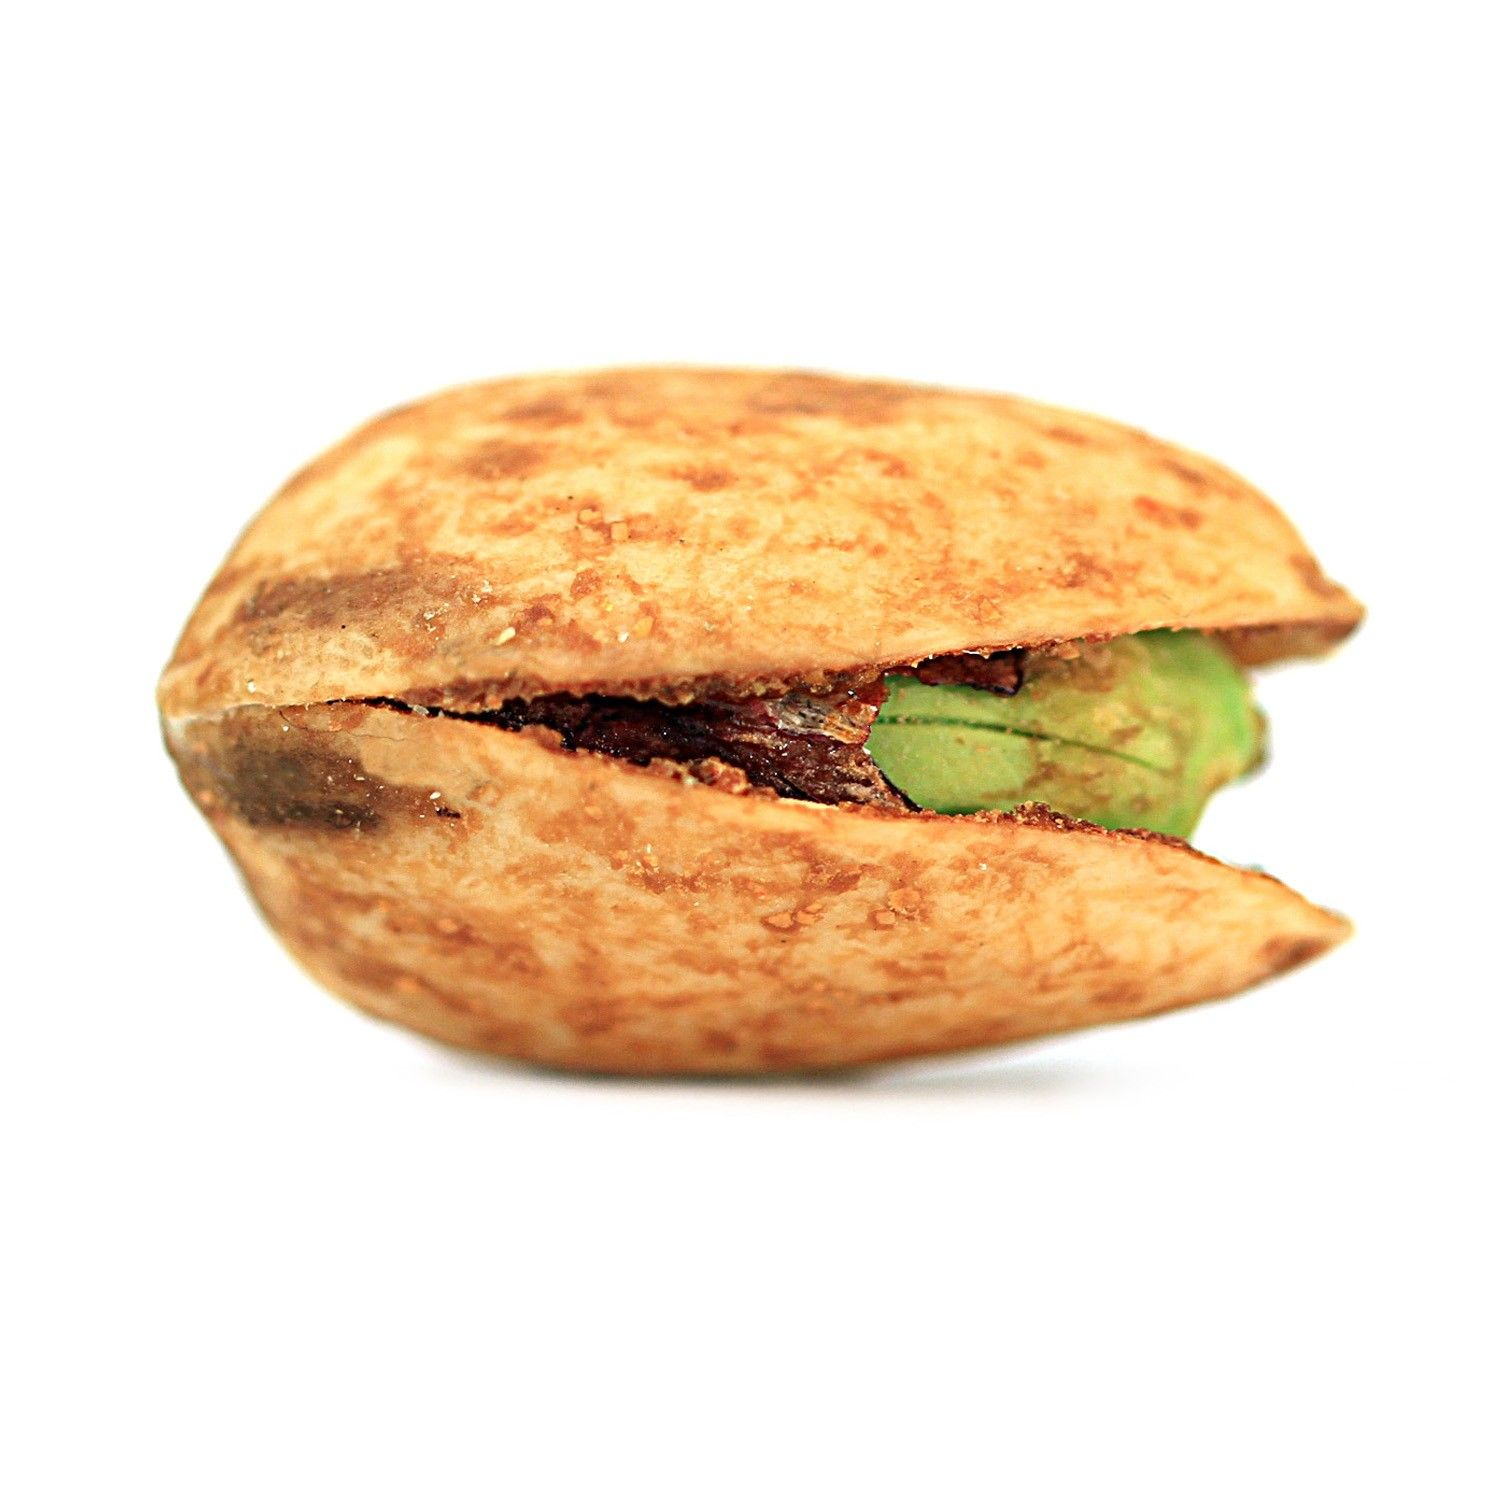 A close up and personal look at our Jalapeno Flavored #Pistachios! Great for snacking or adding into recipes. $13.95